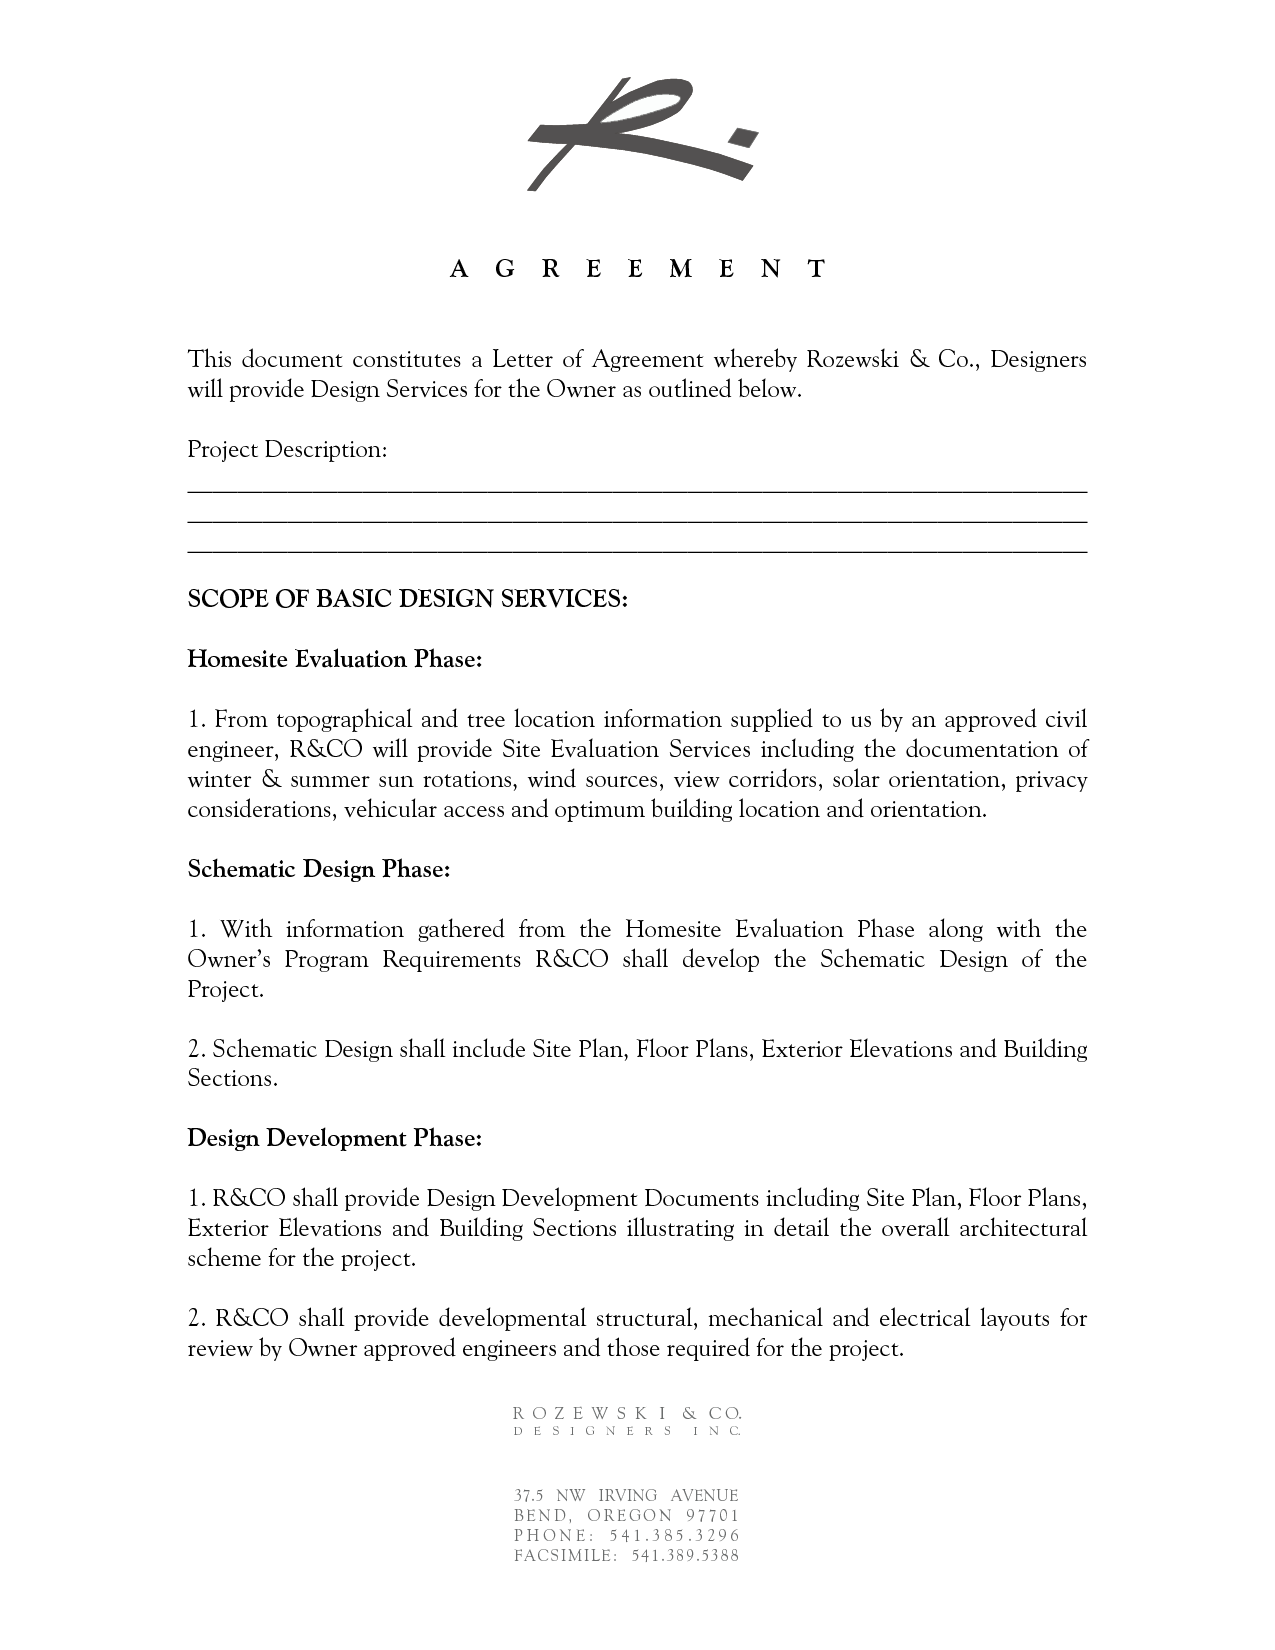 19 Design Agreement Template Images Interior Contract